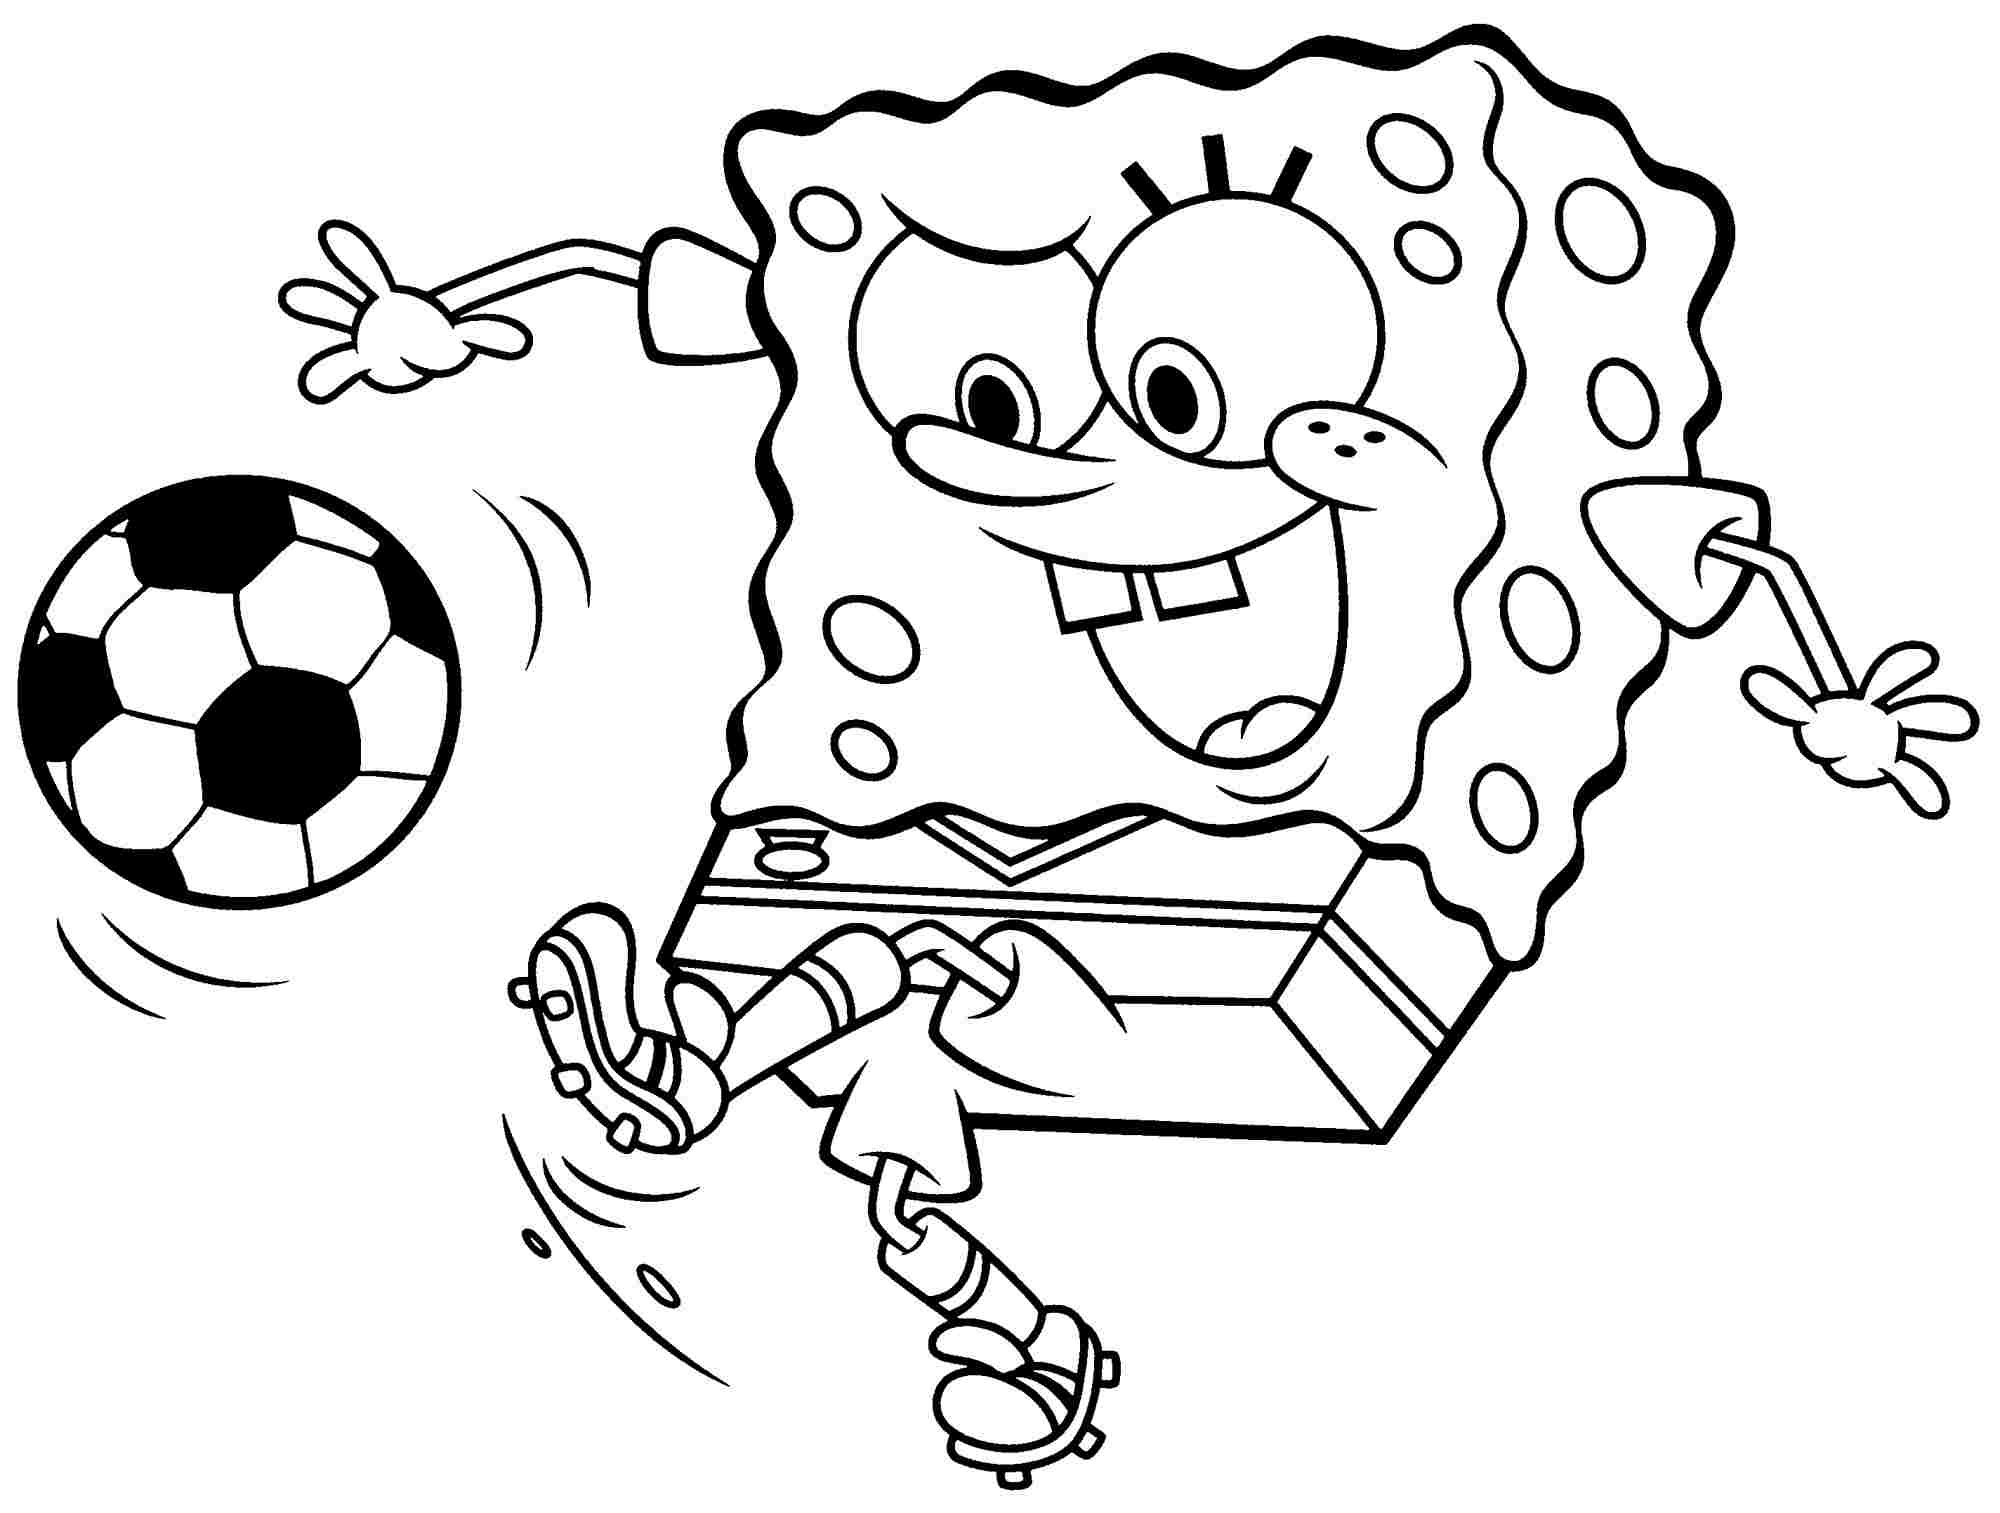 2000x1513 Spongebob Coloring Pages Spongebob Coloring Pages